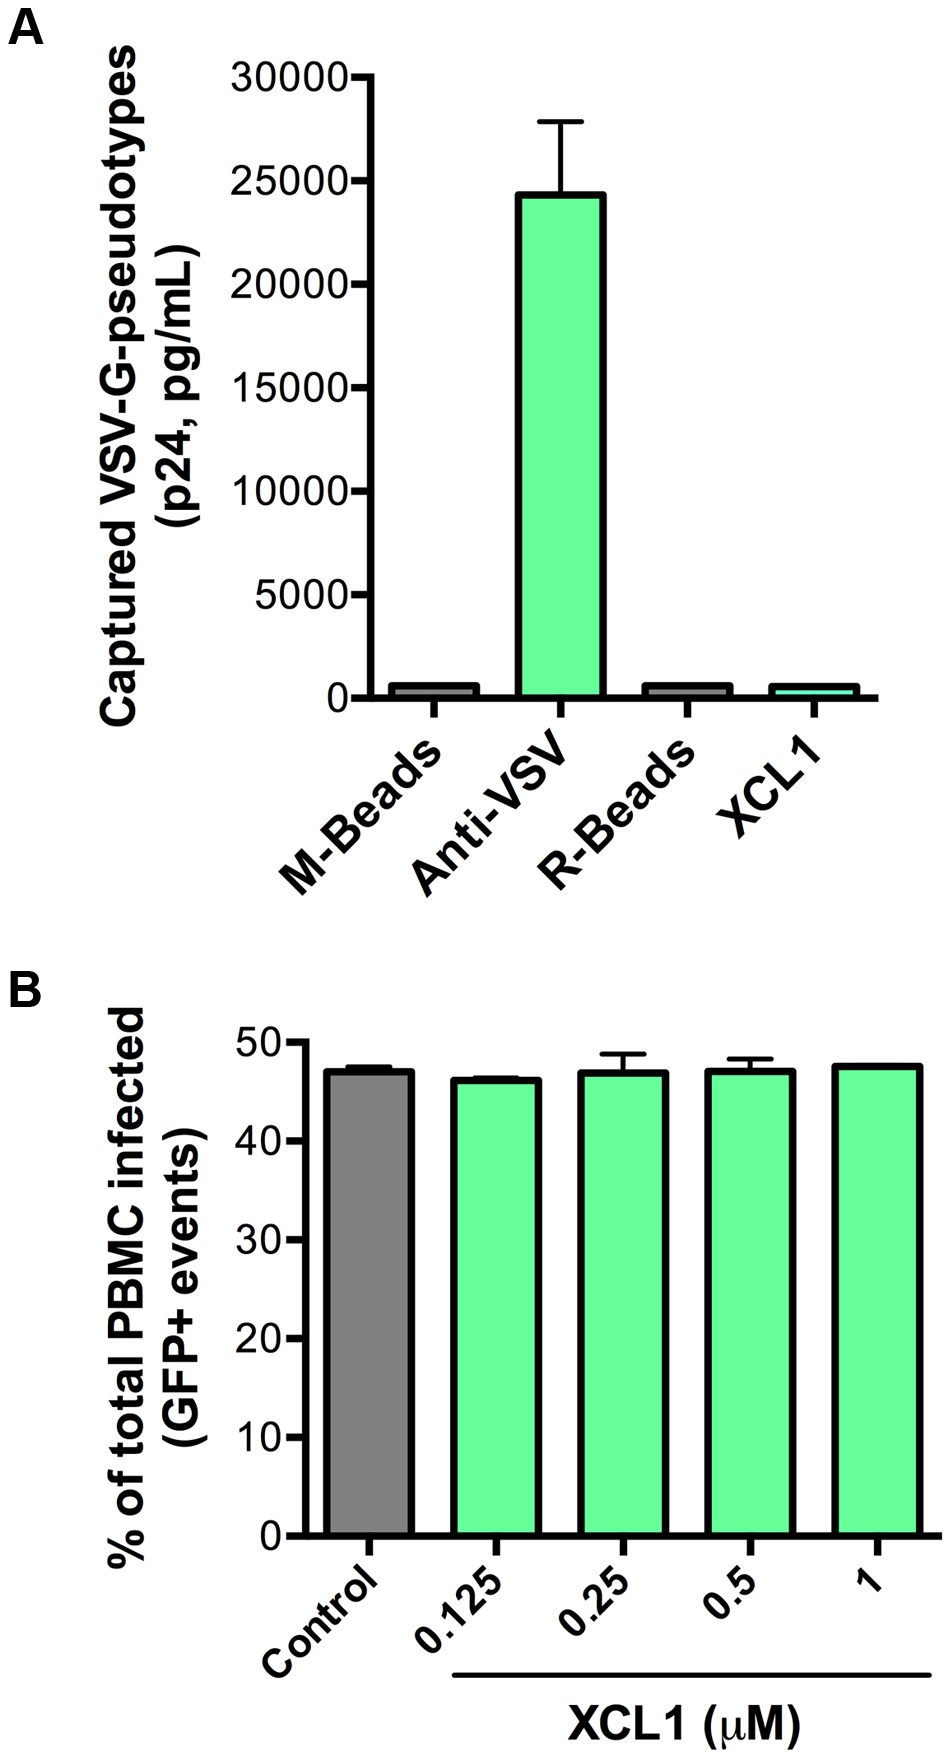 XCL1 does not interact with or inhibit VSV-G-pseudotyped virus.